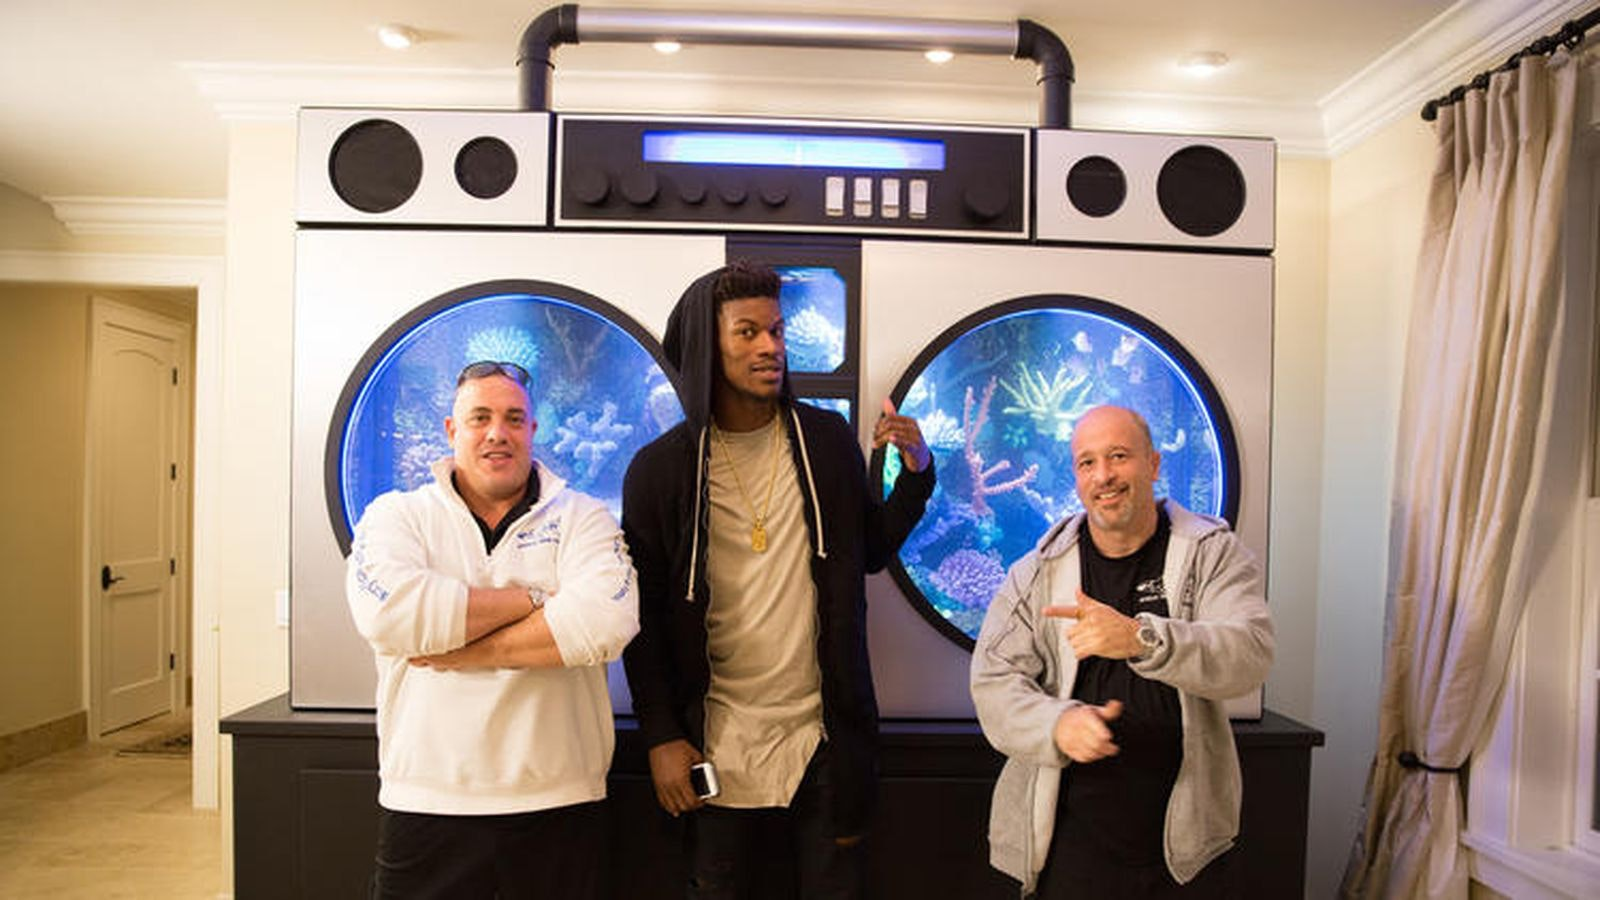 ct-jimmy-butler-animal-planet-tanked-20151111-001.0.0